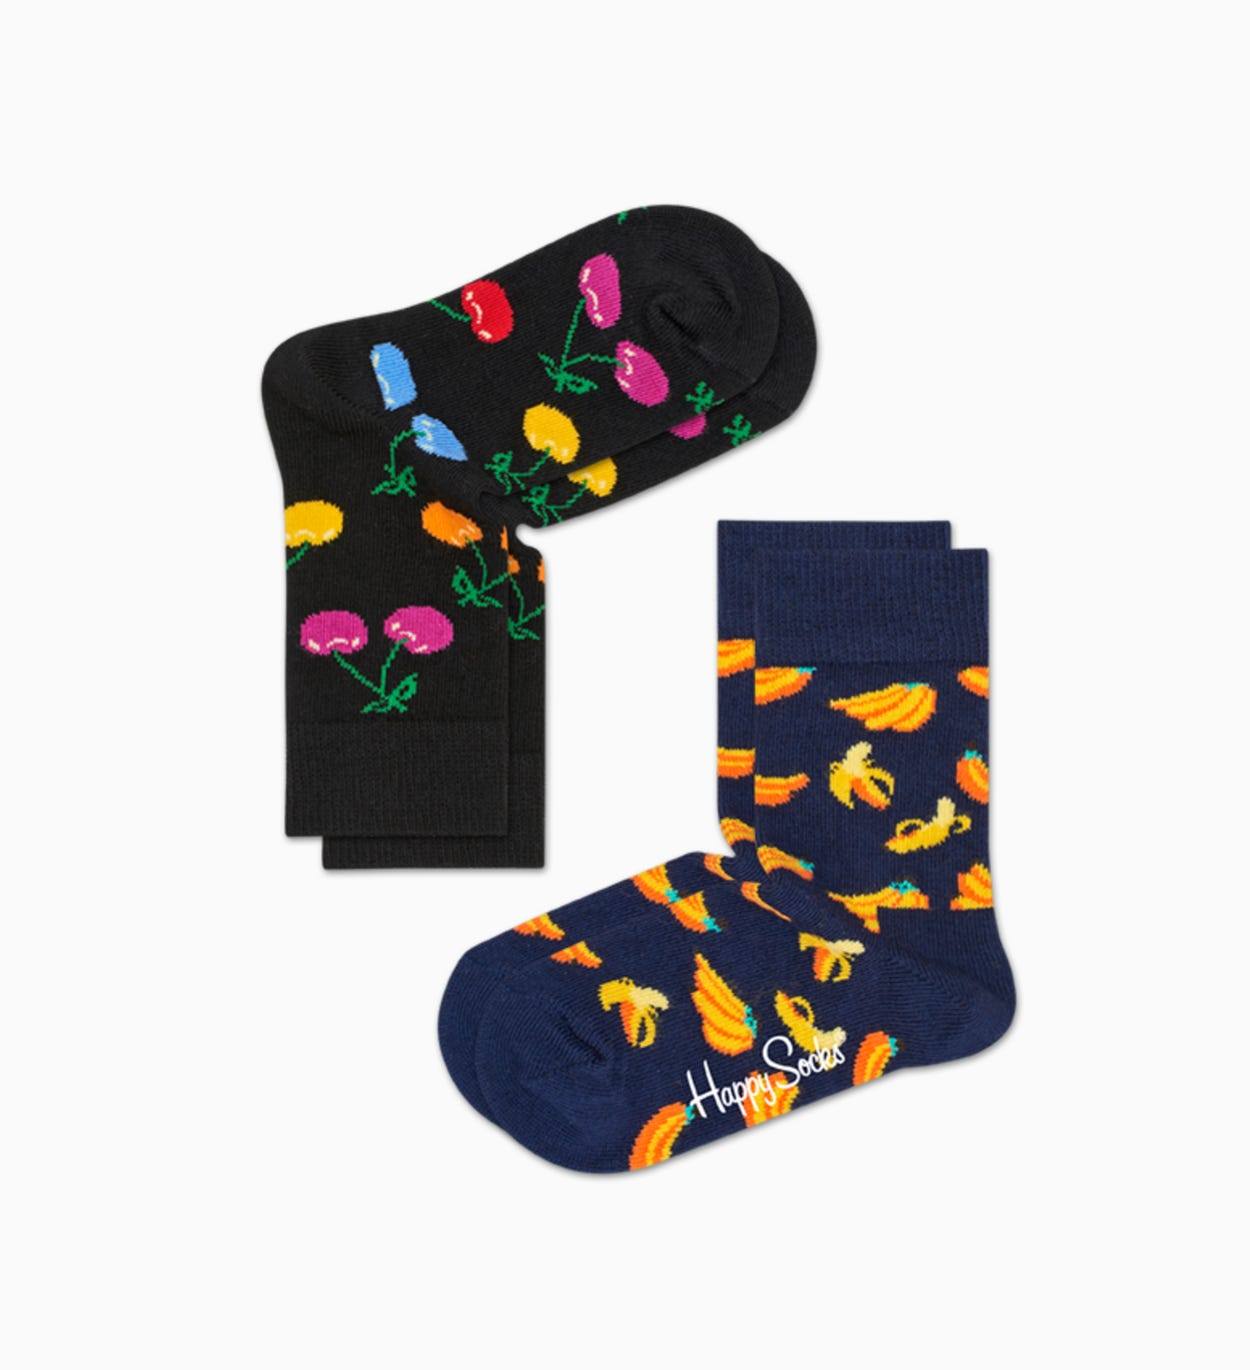 Black   Blue baby socks: Cherry - 2pc | Happy Socks